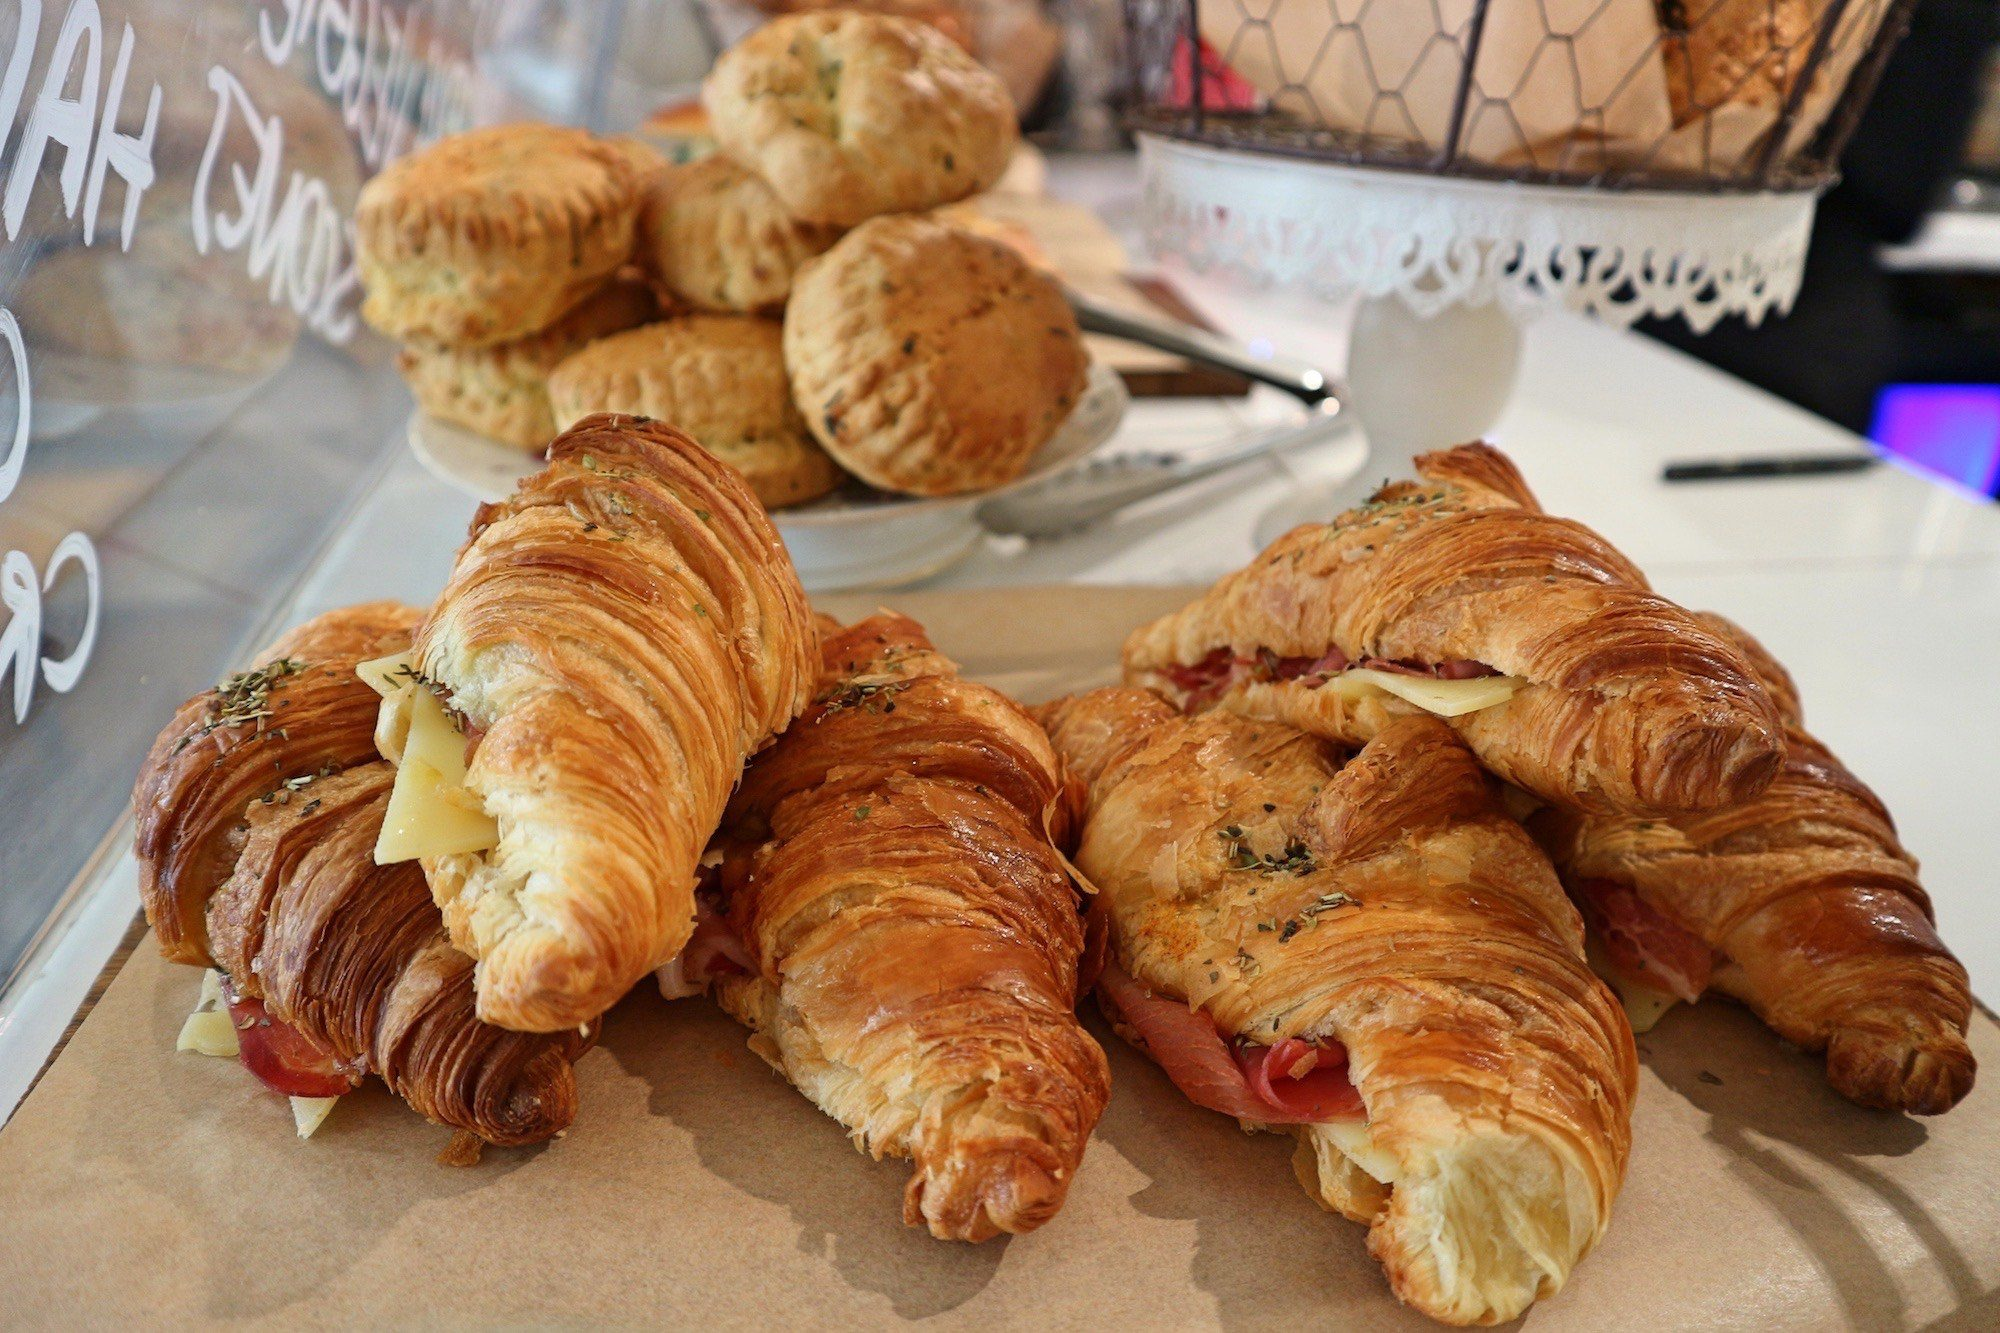 Baguett's Café is great for having brunch in Paris near the Palais Royal and serves tasty ham and cheese croissants.